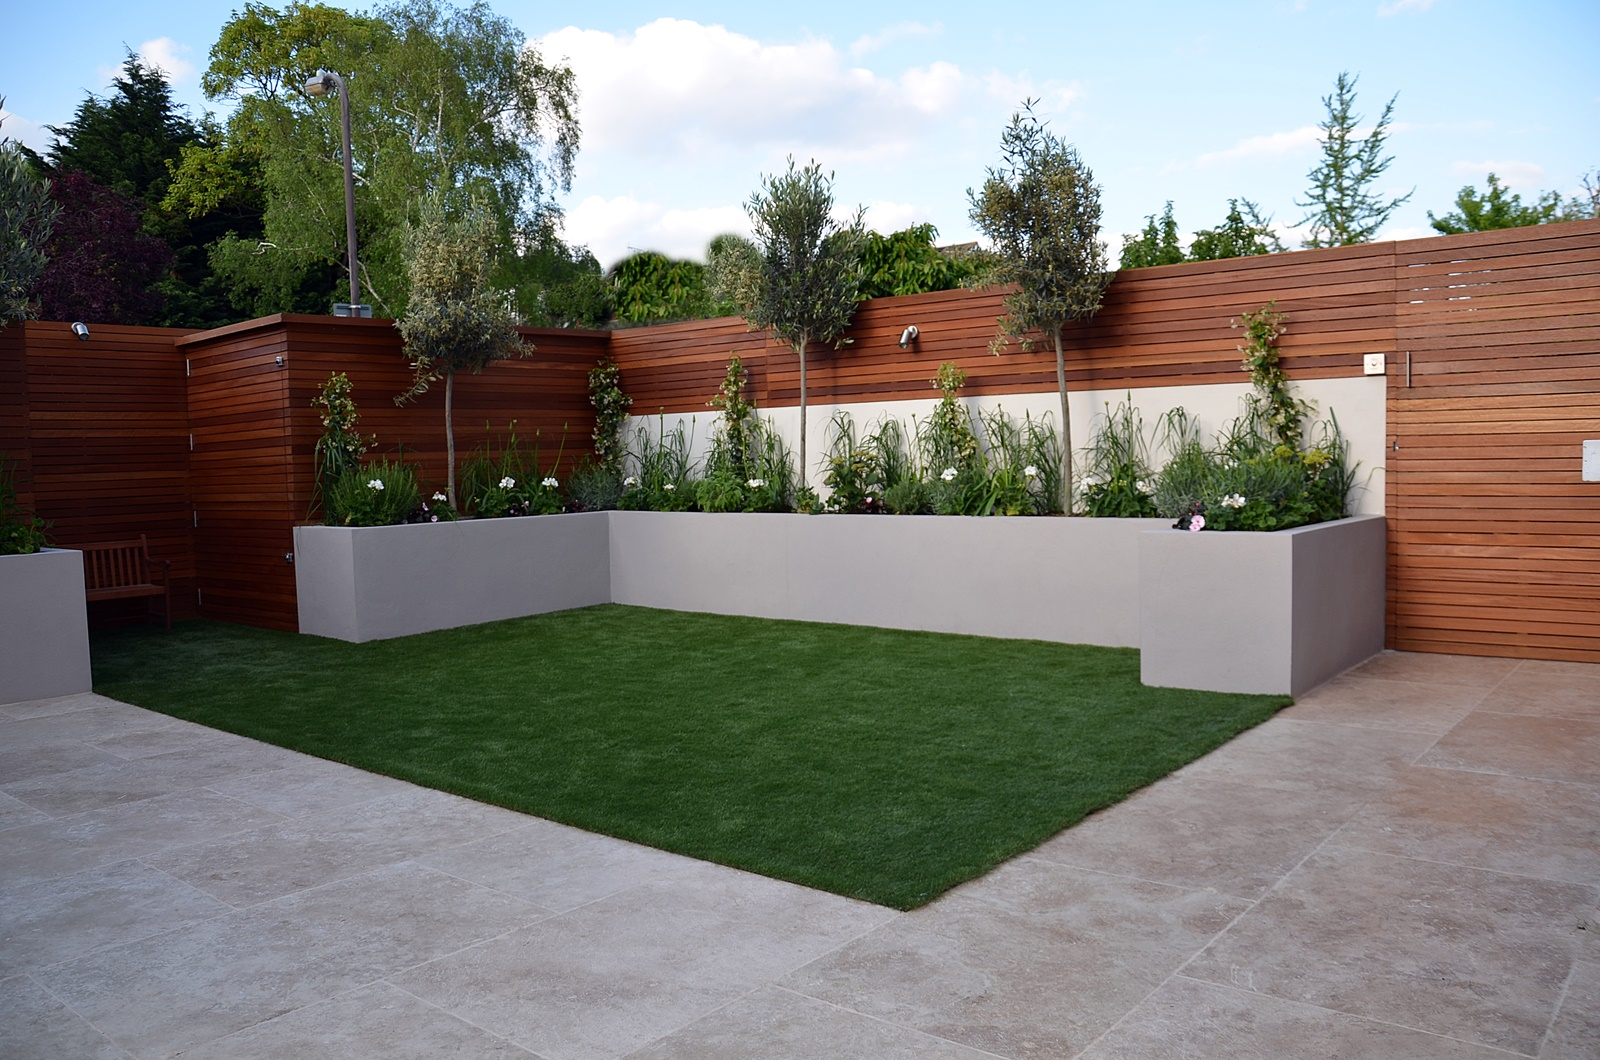 Modern garden design fulham chelsea clapham battersea for Pictures of small garden designs